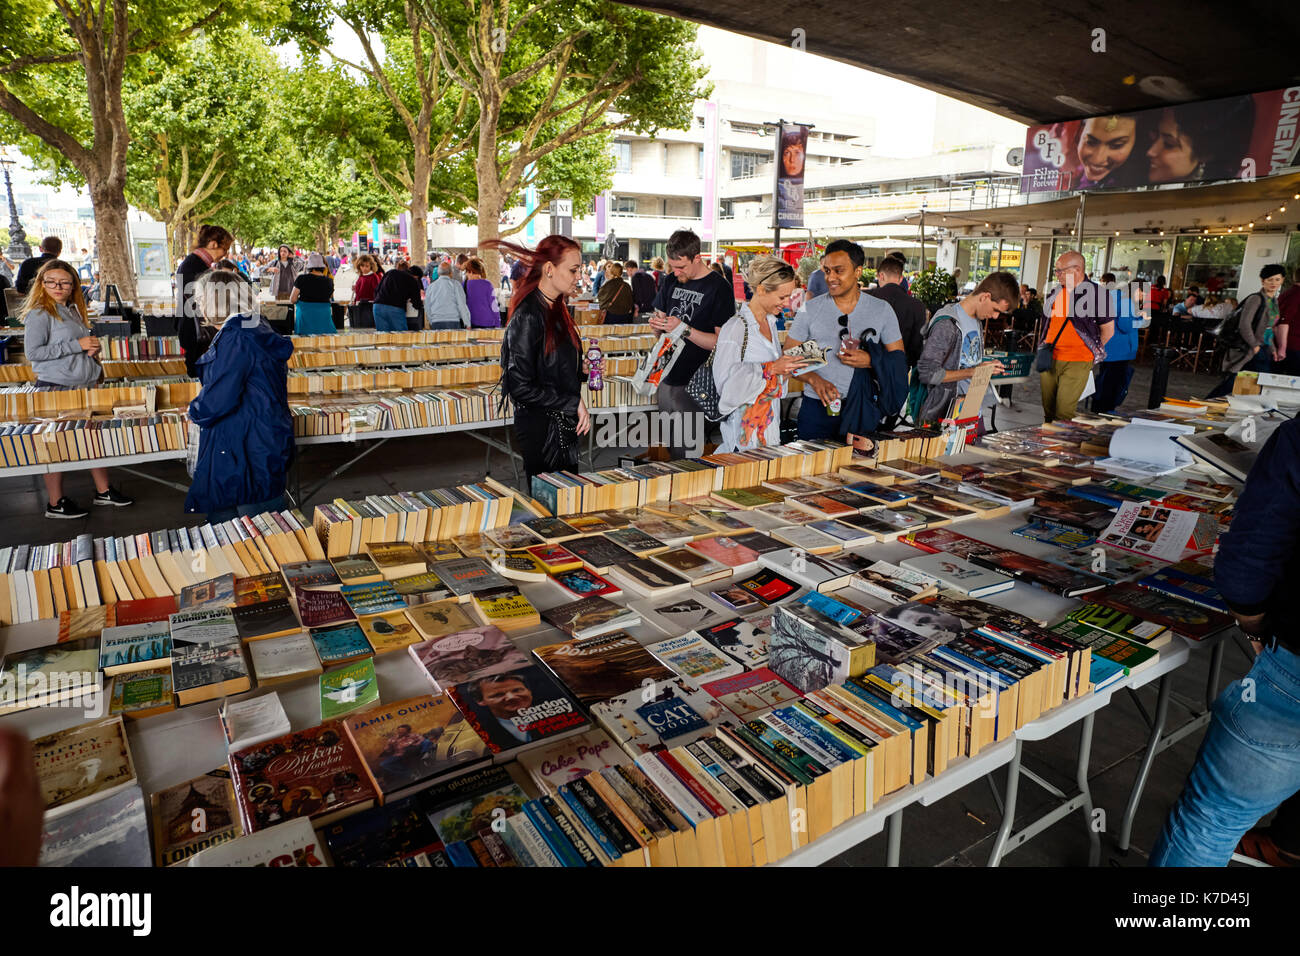 People choosing books at the Southbank under Waterloo Bridge on a Sunday - Stock Image